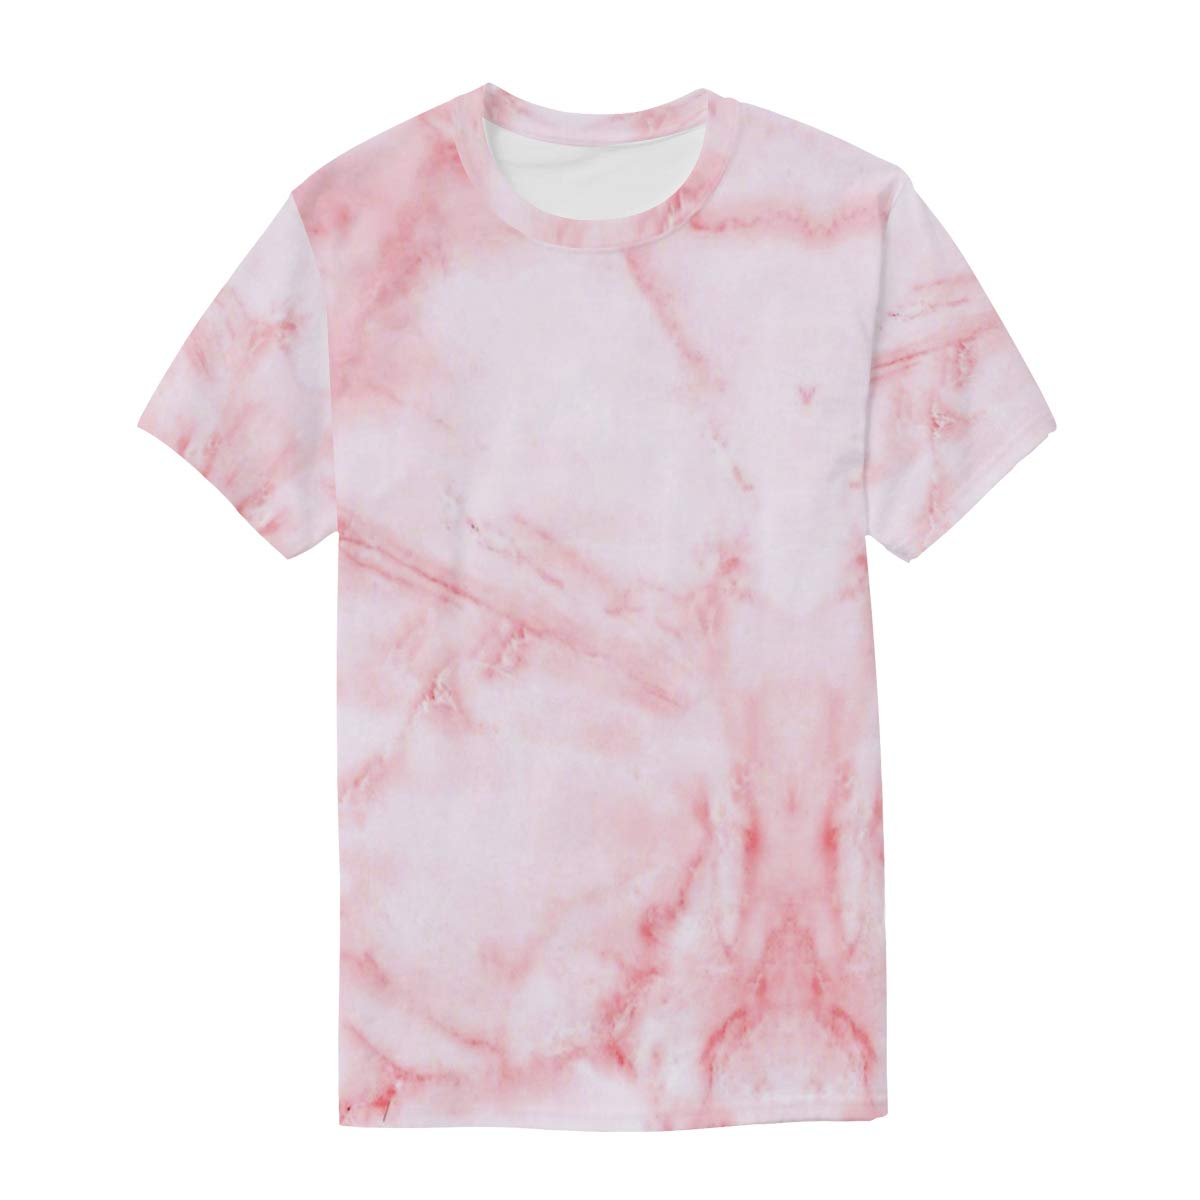 Rock Pink Marble Mens T Shirts Graphic Funny Body Print Short T-Shirt Unisex Pullover Blouse